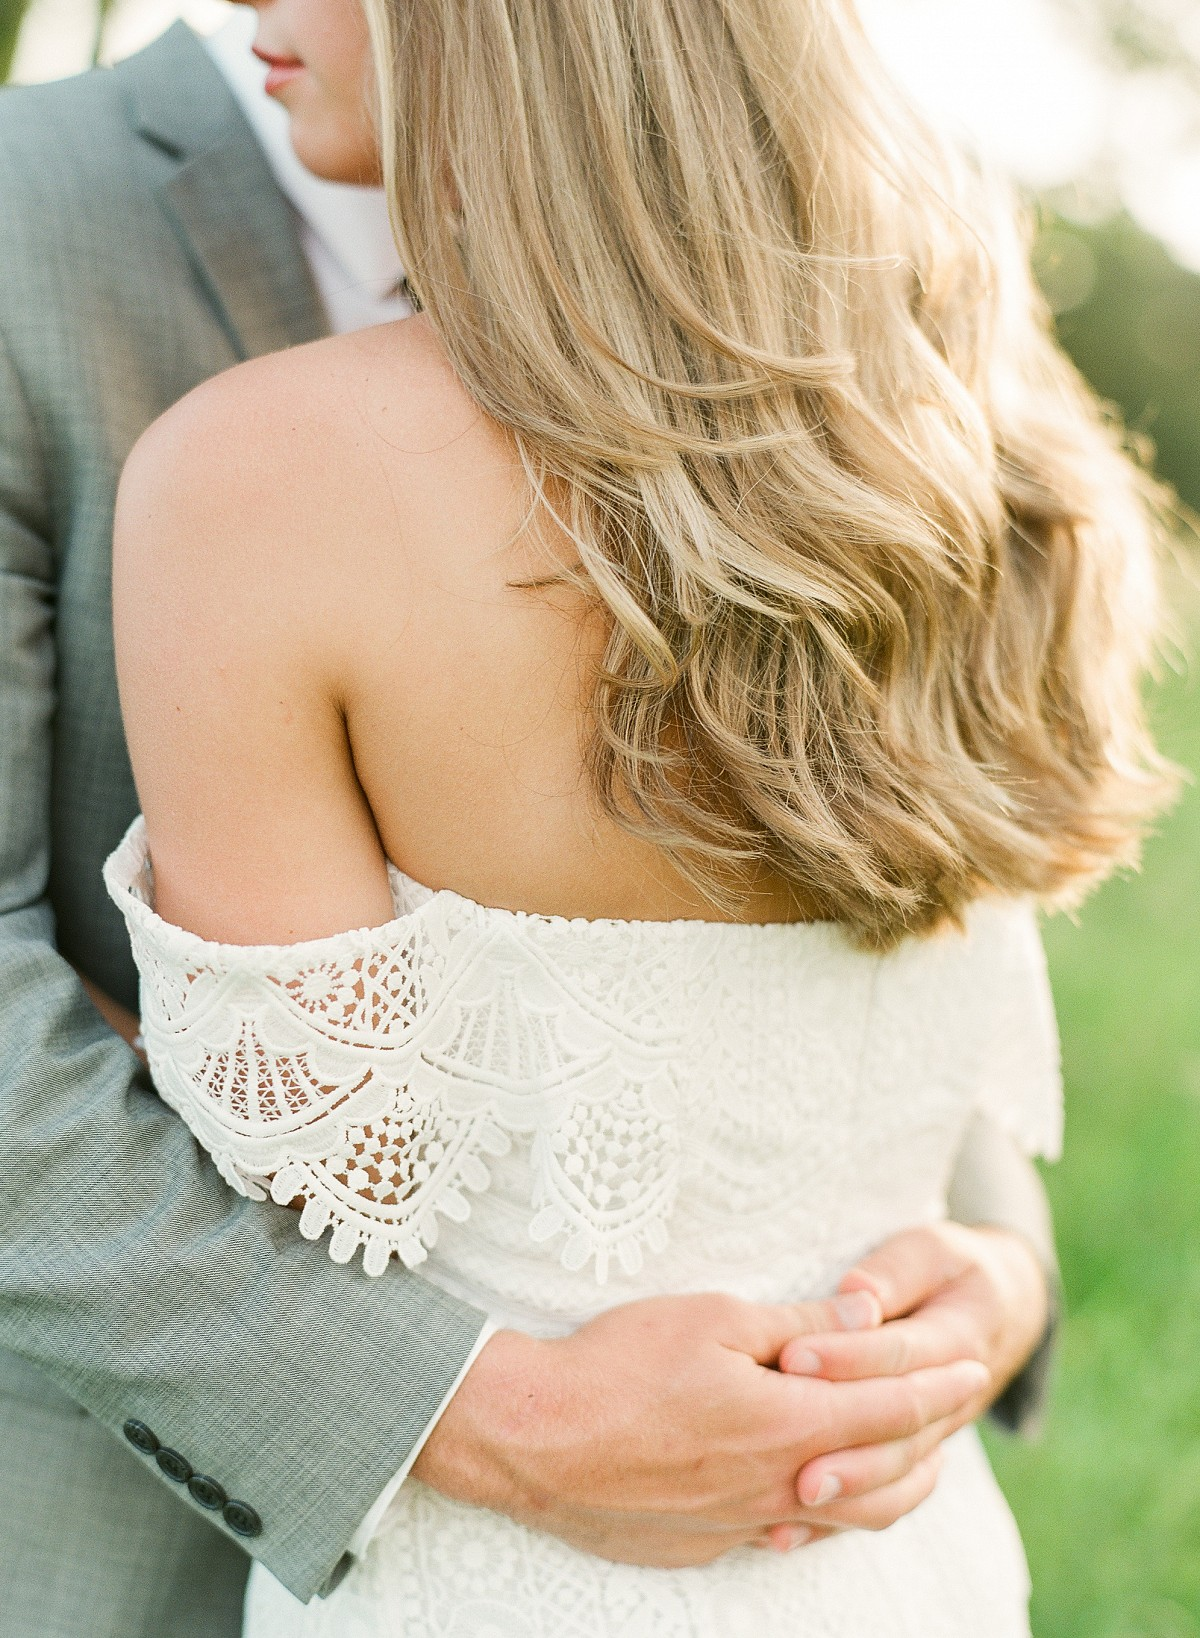 HOW TO PLAN YOUR ENGAGEMENT SESSION